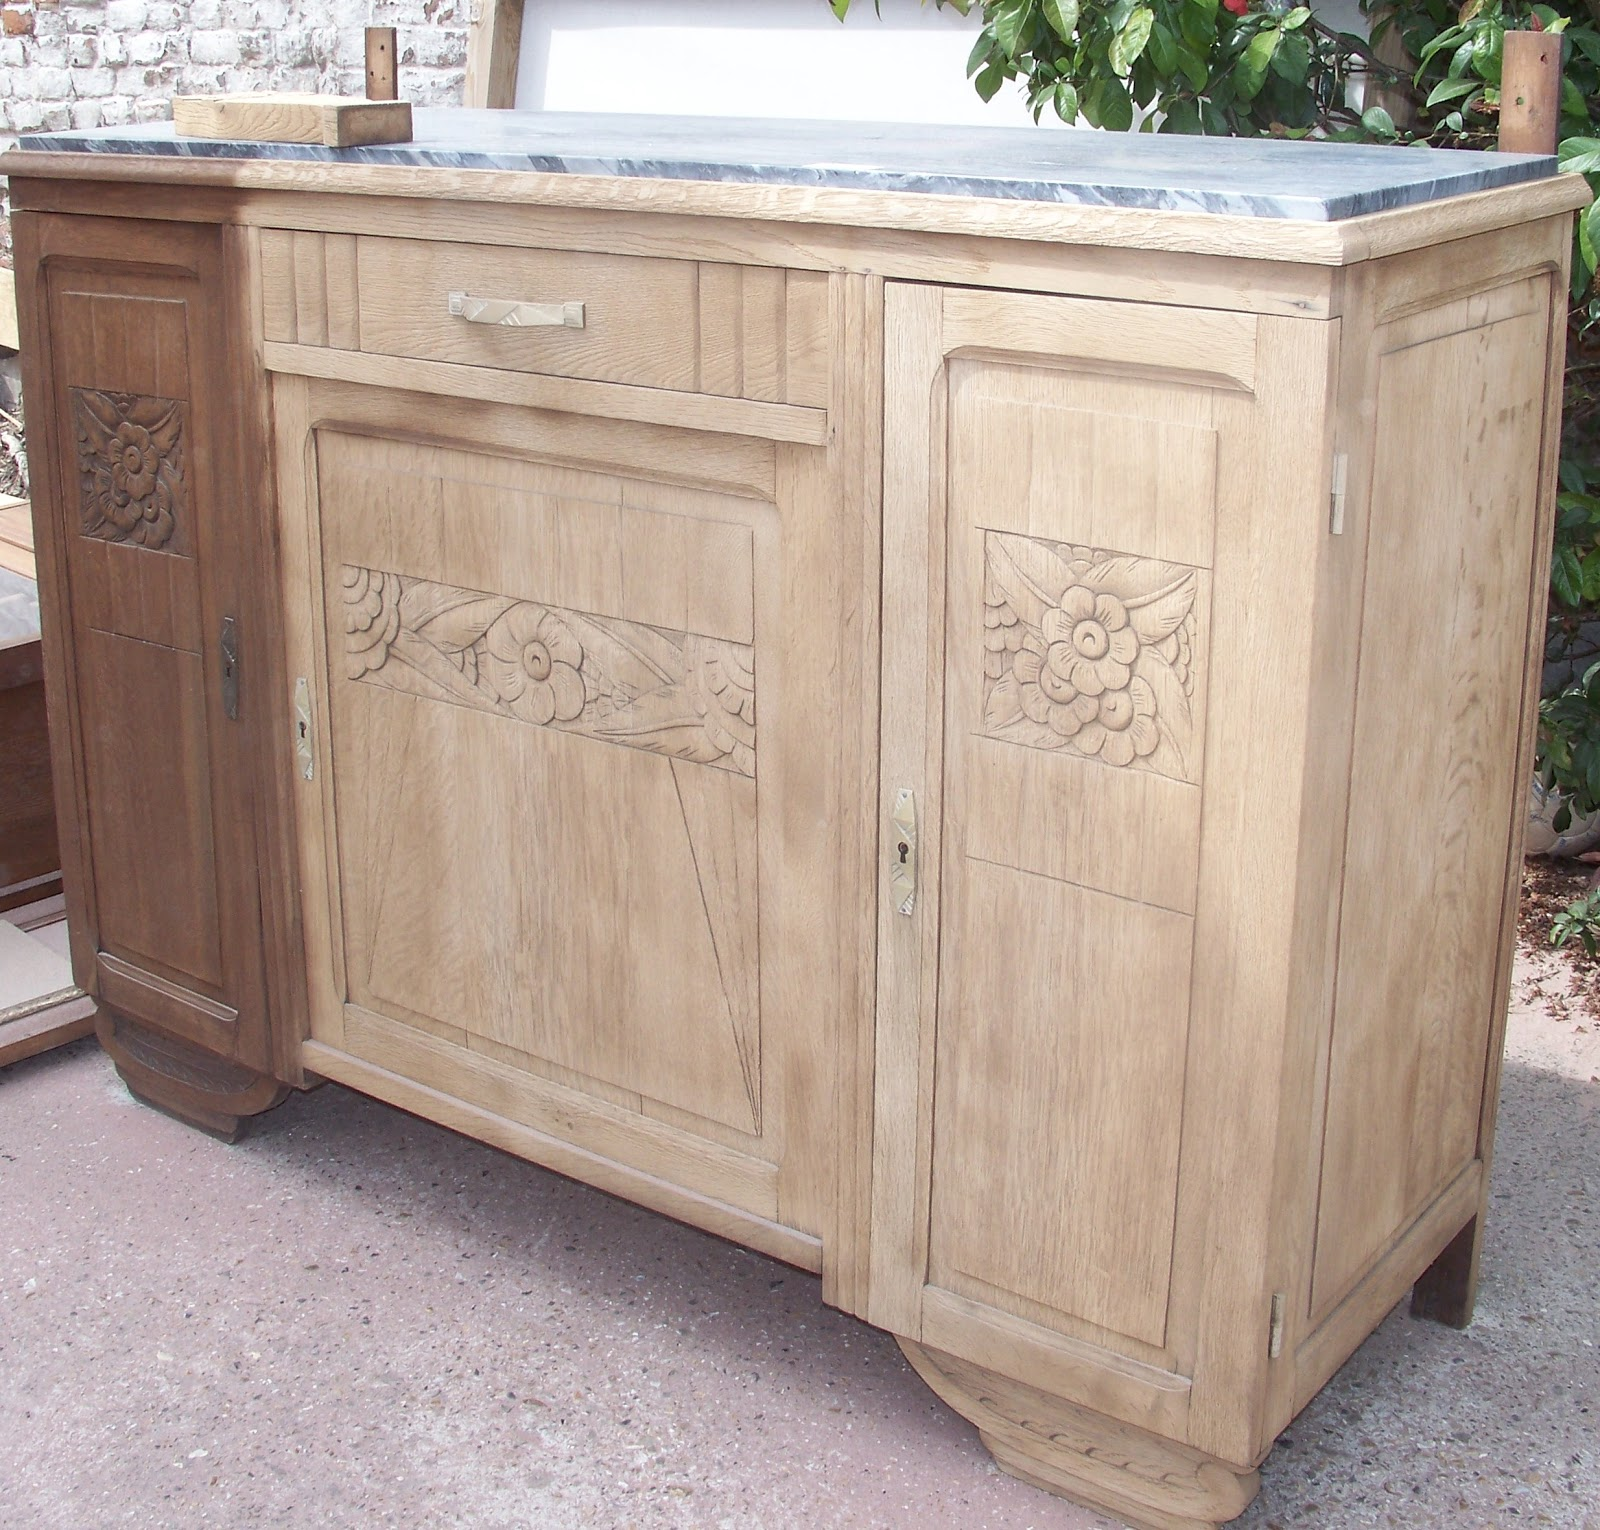 D capage a rogommage petits meubles - Decapage meuble ancien ...